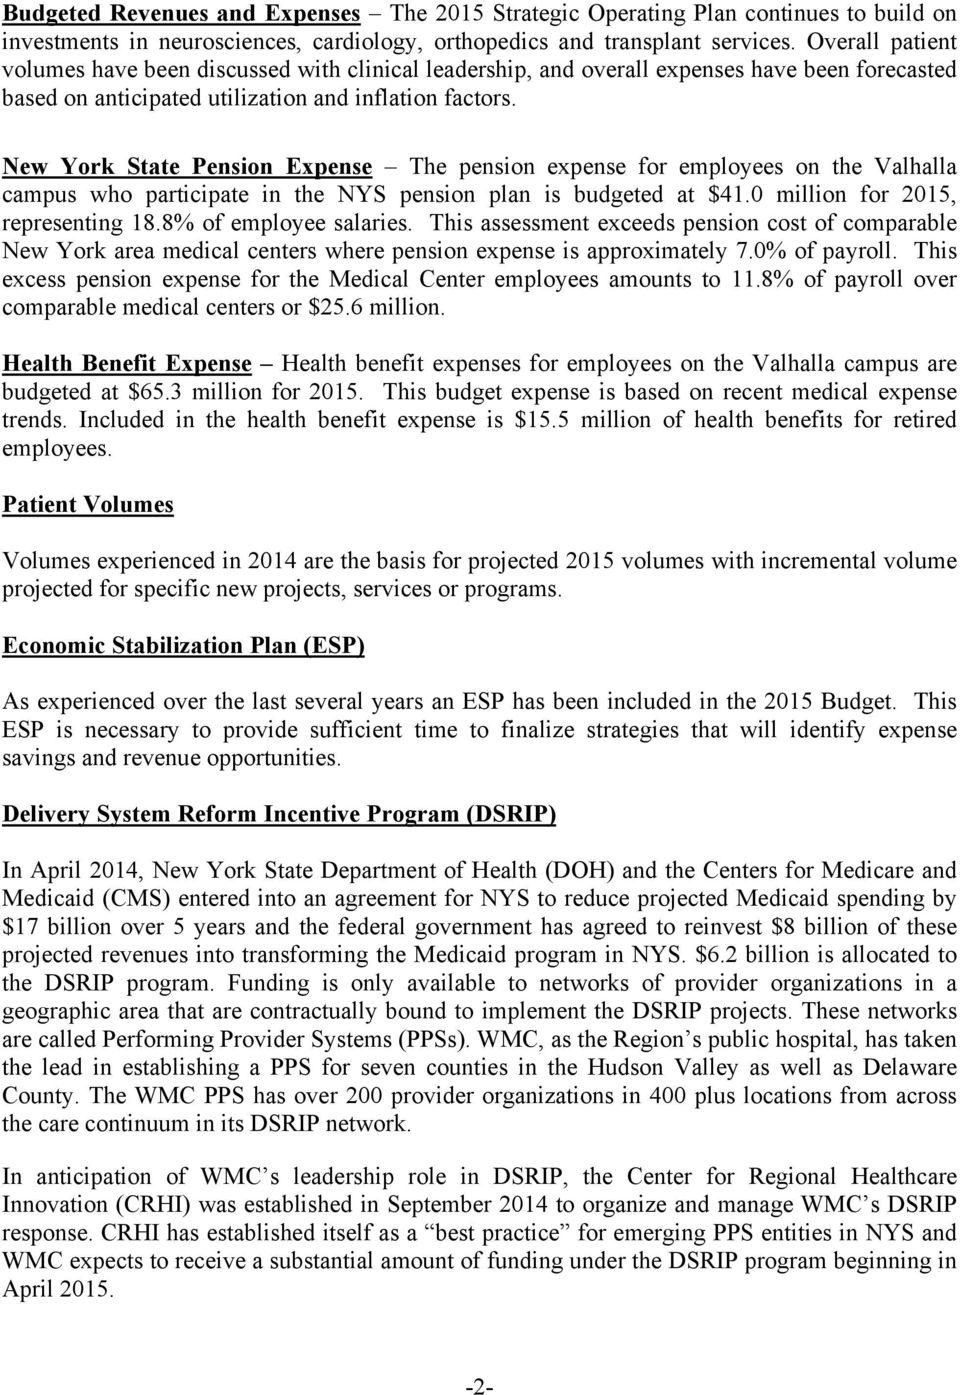 New York State Pension Expense The pension expense for employees on the Valhalla campus who participate in the NYS pension plan is budgeted at $41.0 million for 2015, representing 18.